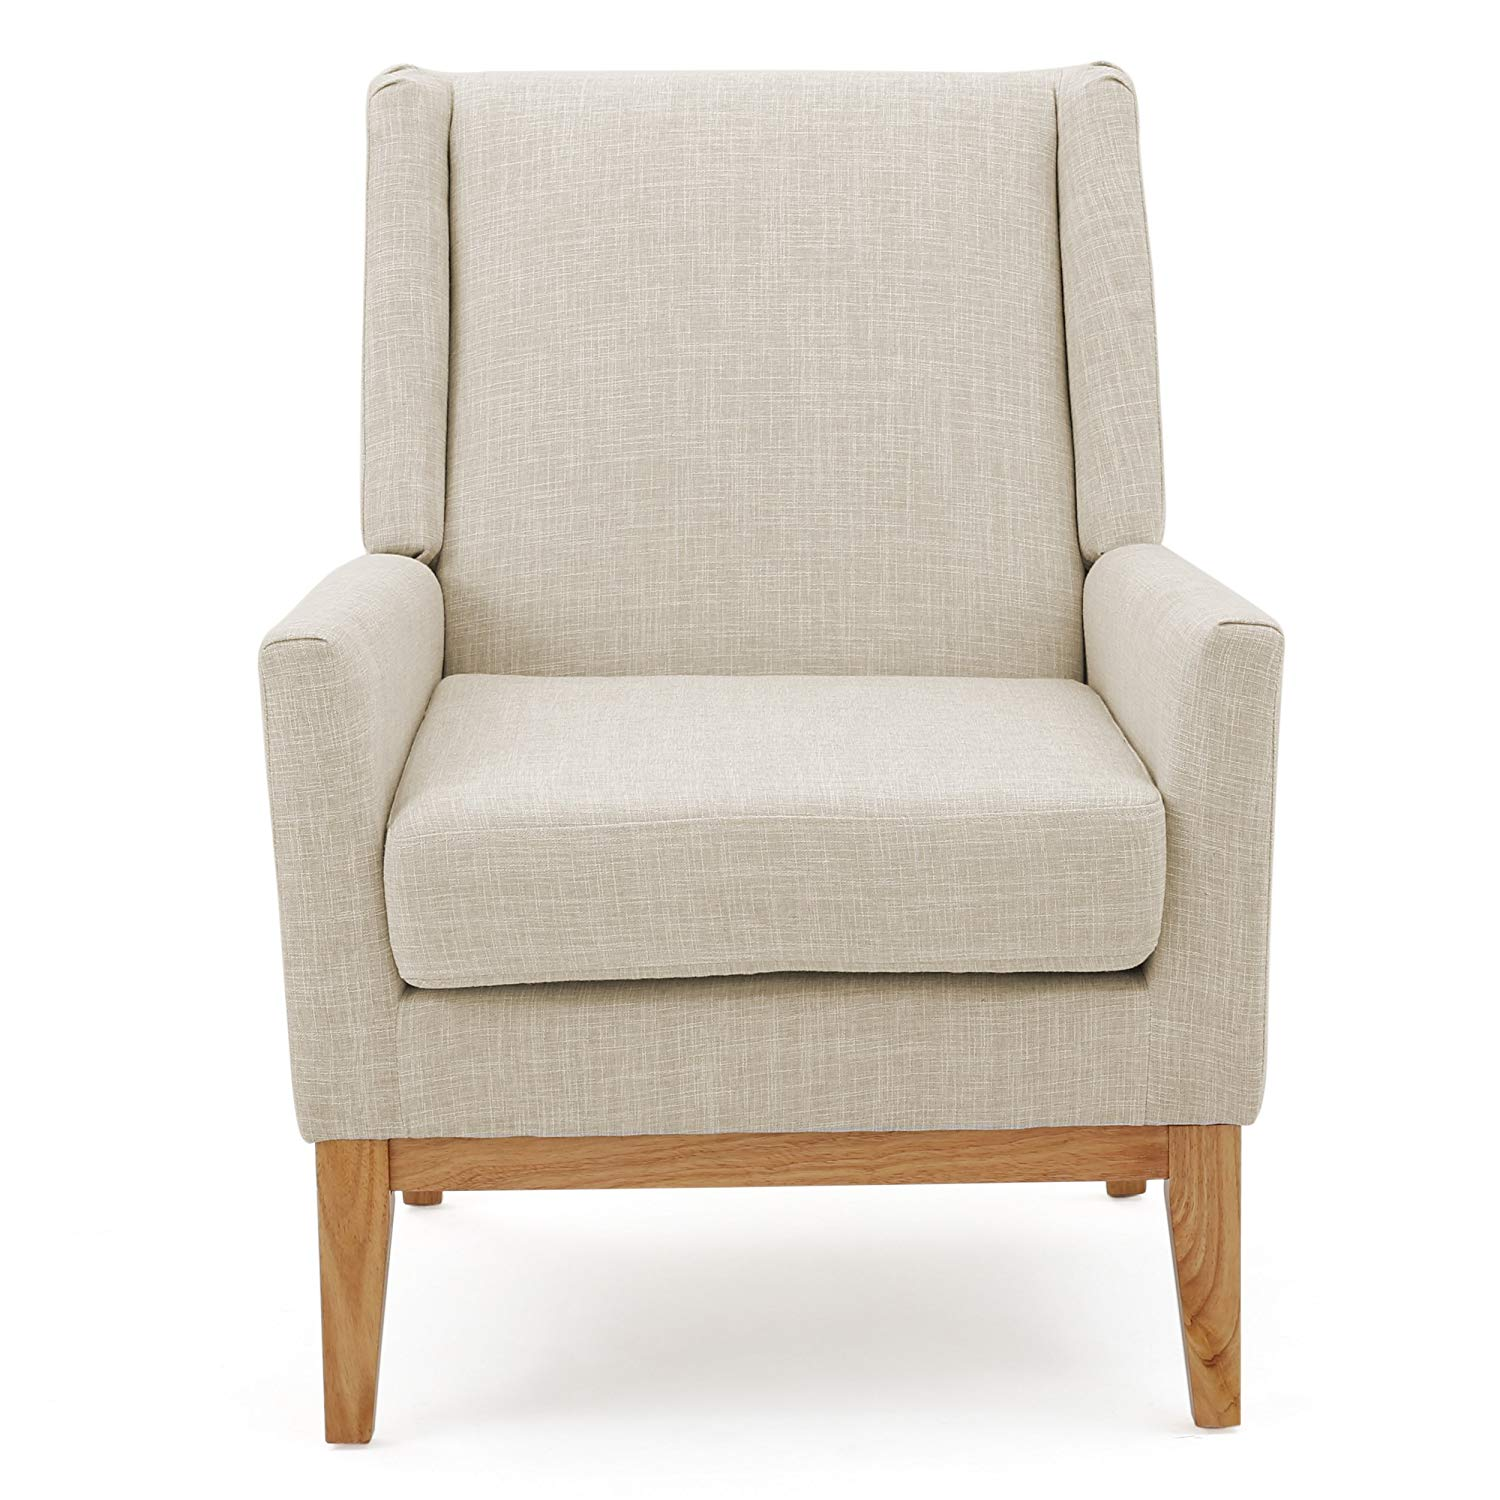 Mid-Century Modern Fabric Accent Chair - $143.29